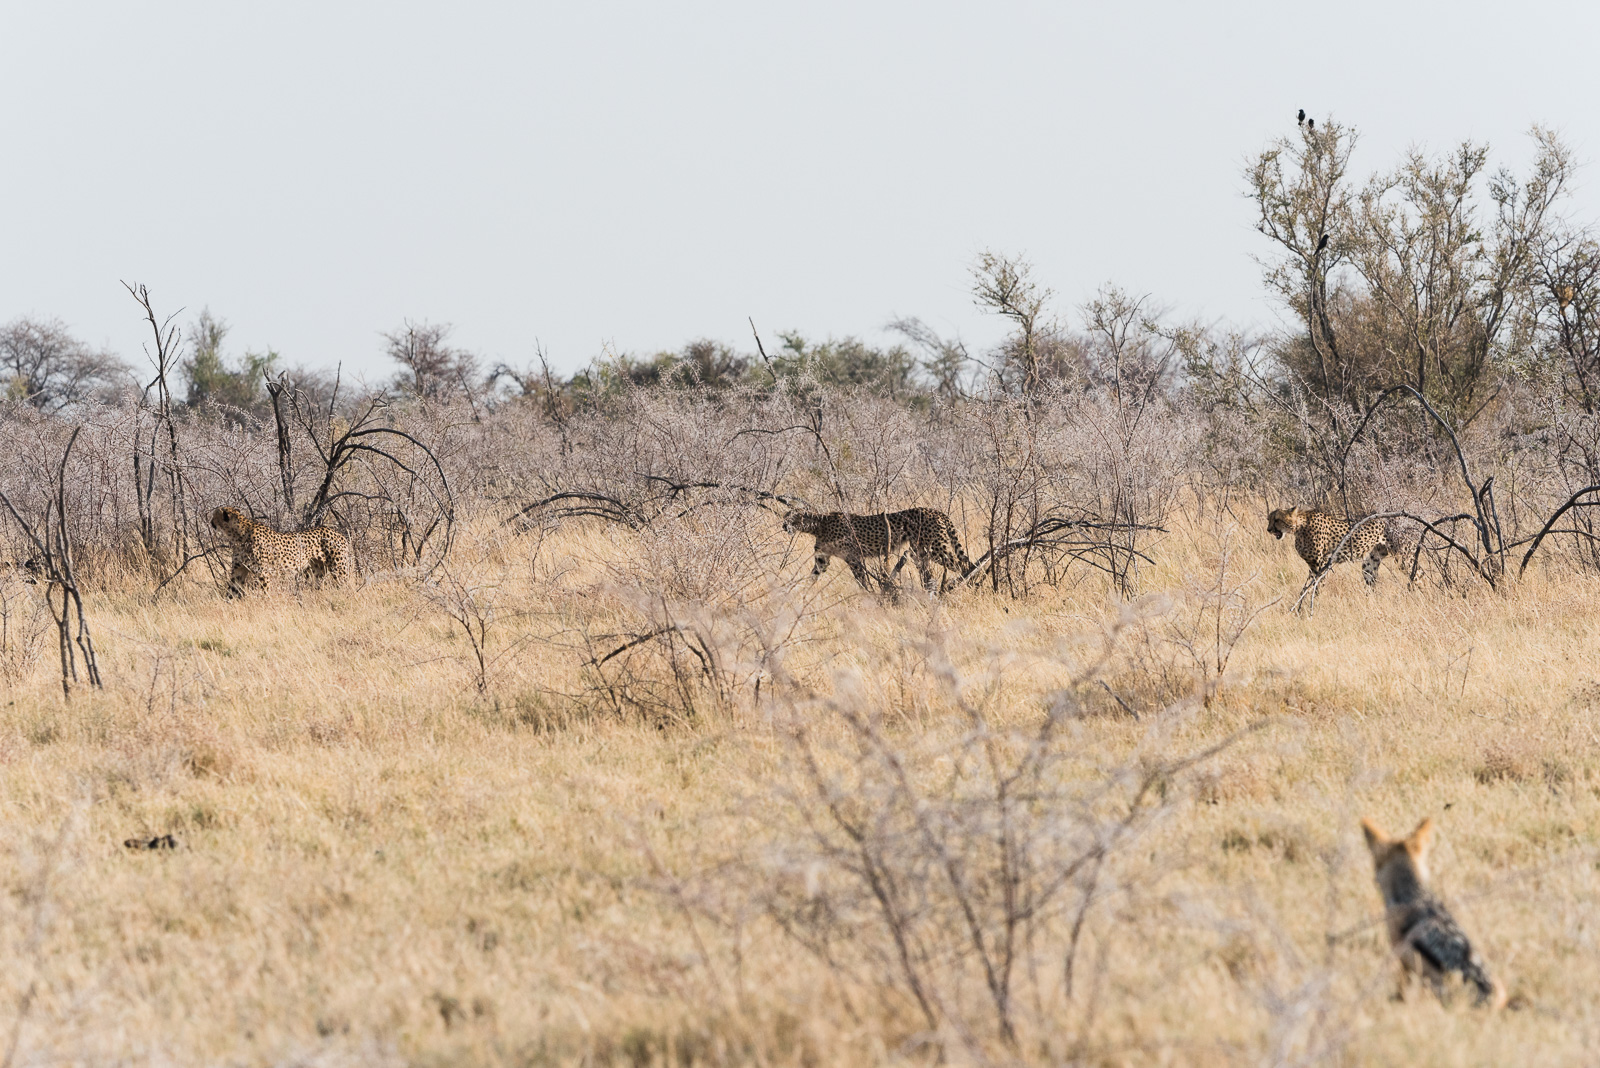 Coalition of three male cheetahs stalking prey as young jackal watches from a safe distance